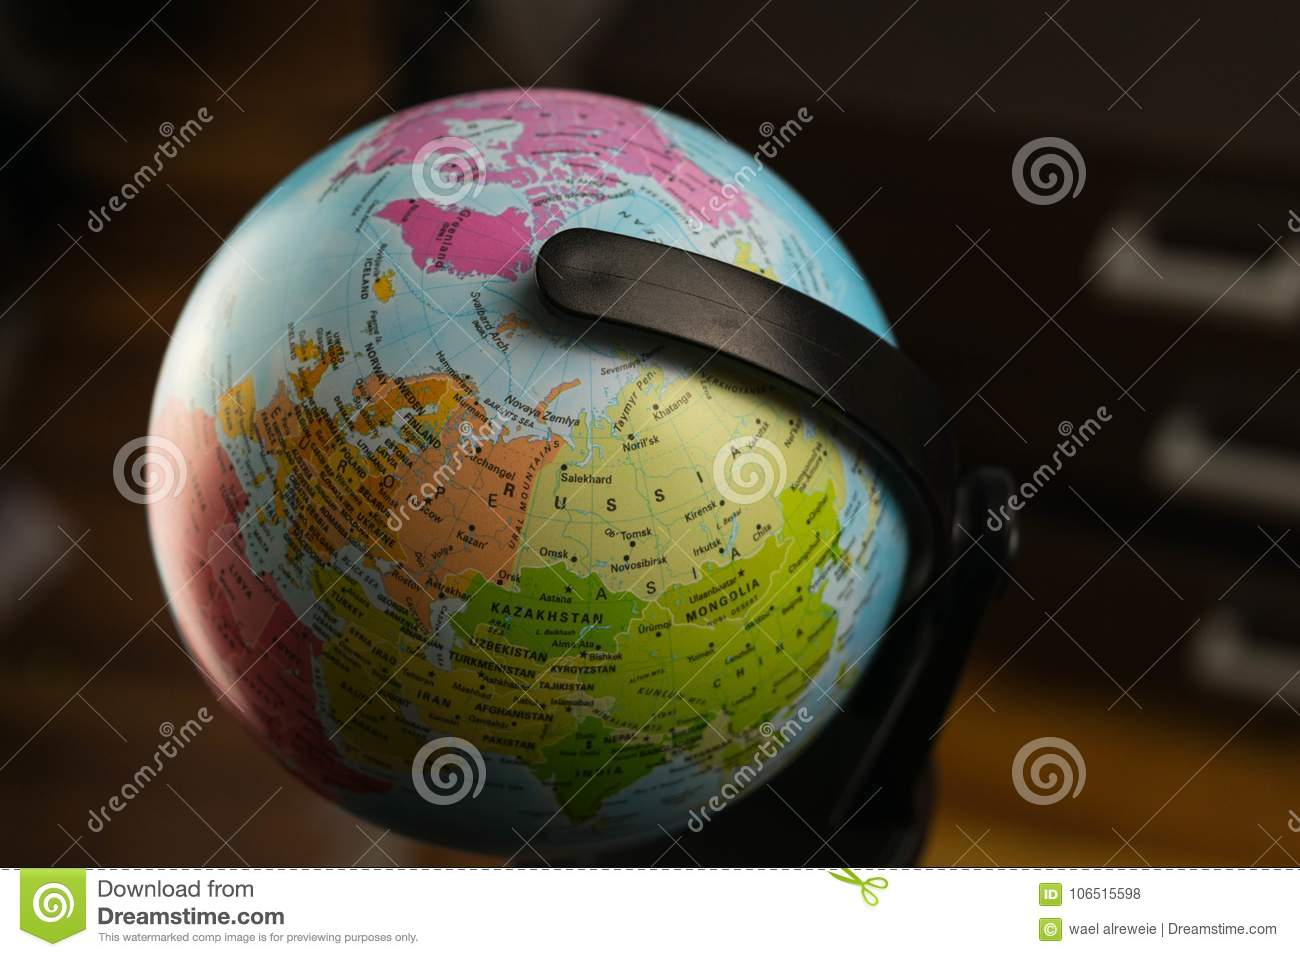 Earth globe map with focus on asia russia canada north pole stock download earth globe map with focus on asia russia canada north pole stock gumiabroncs Choice Image